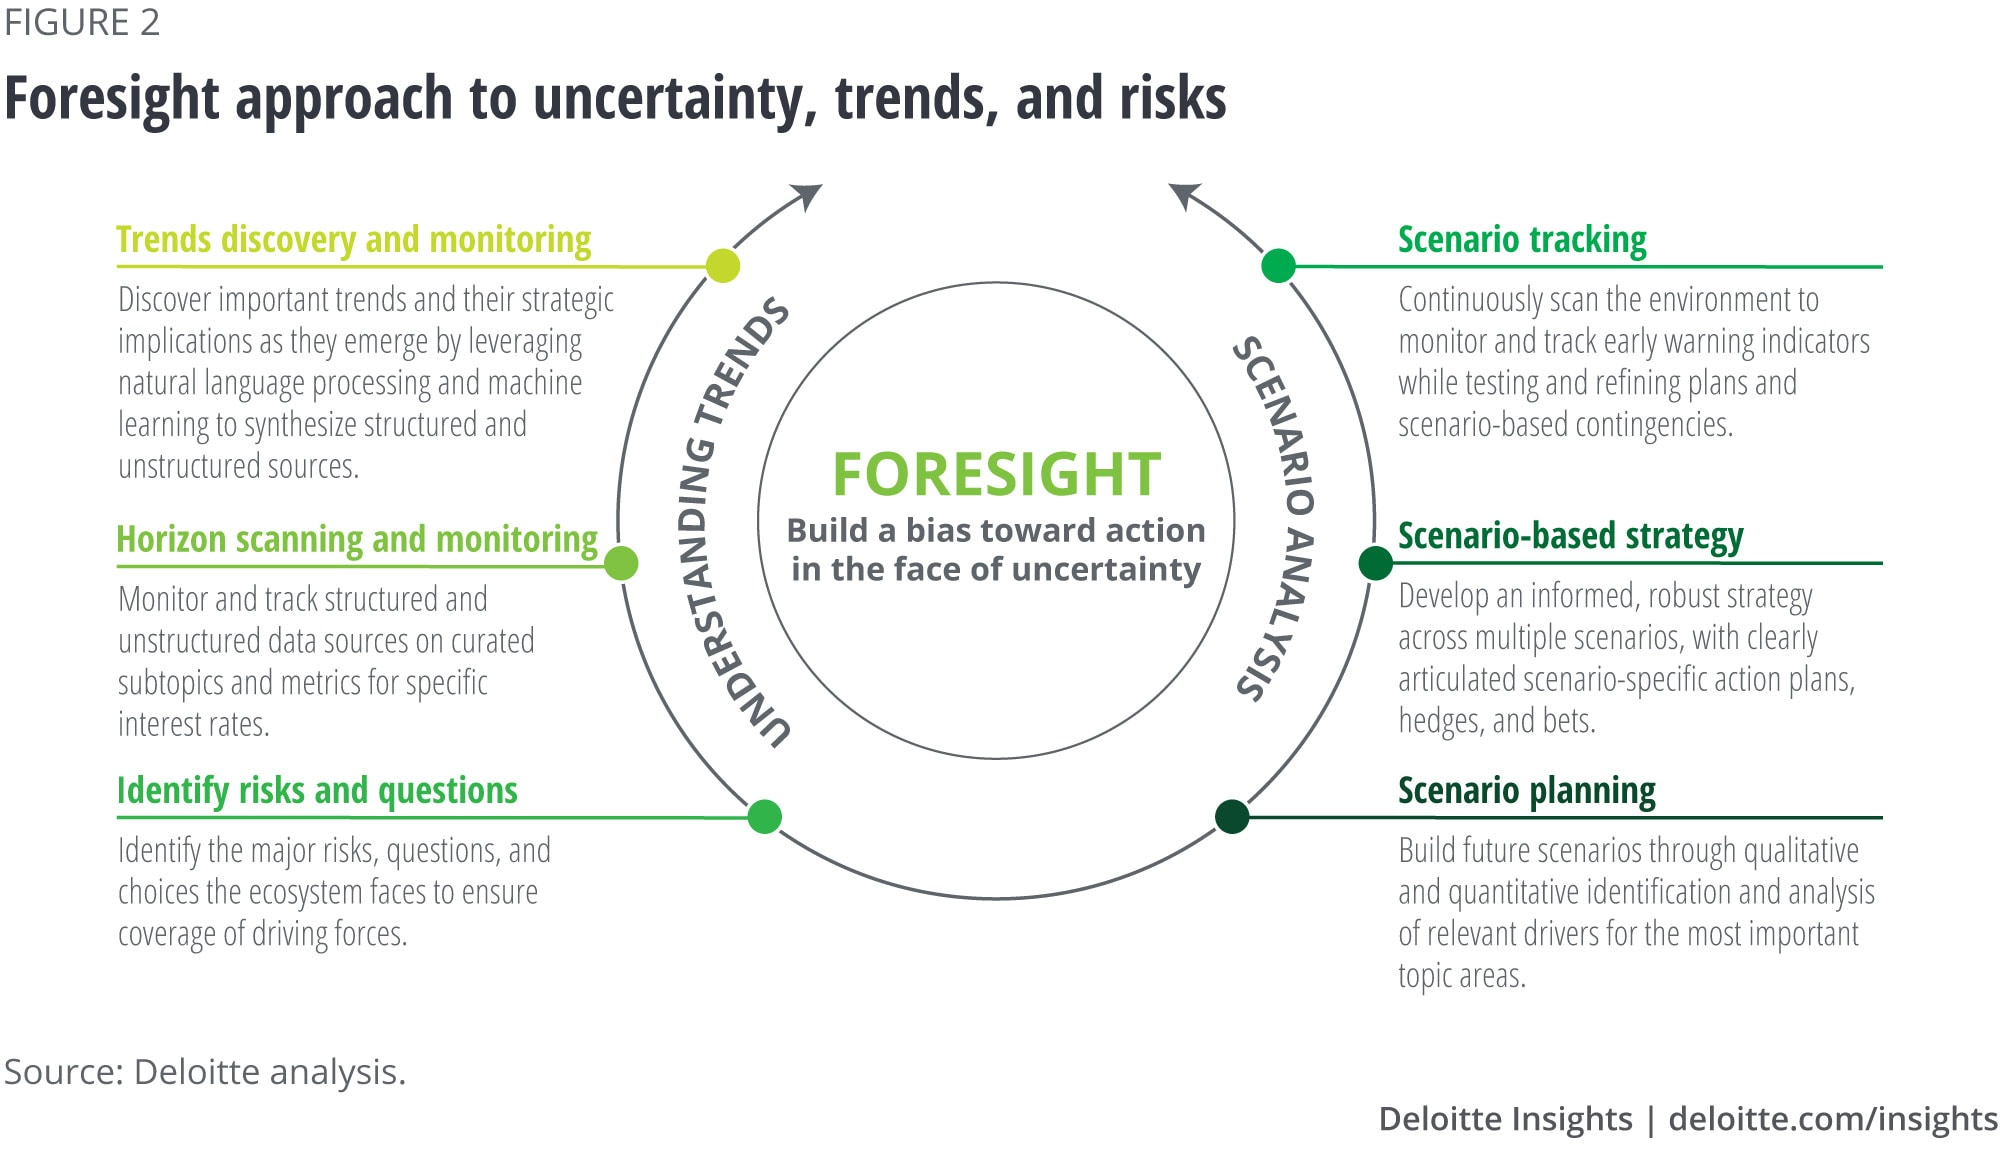 Foresight to address uncertainty, risks, and trends